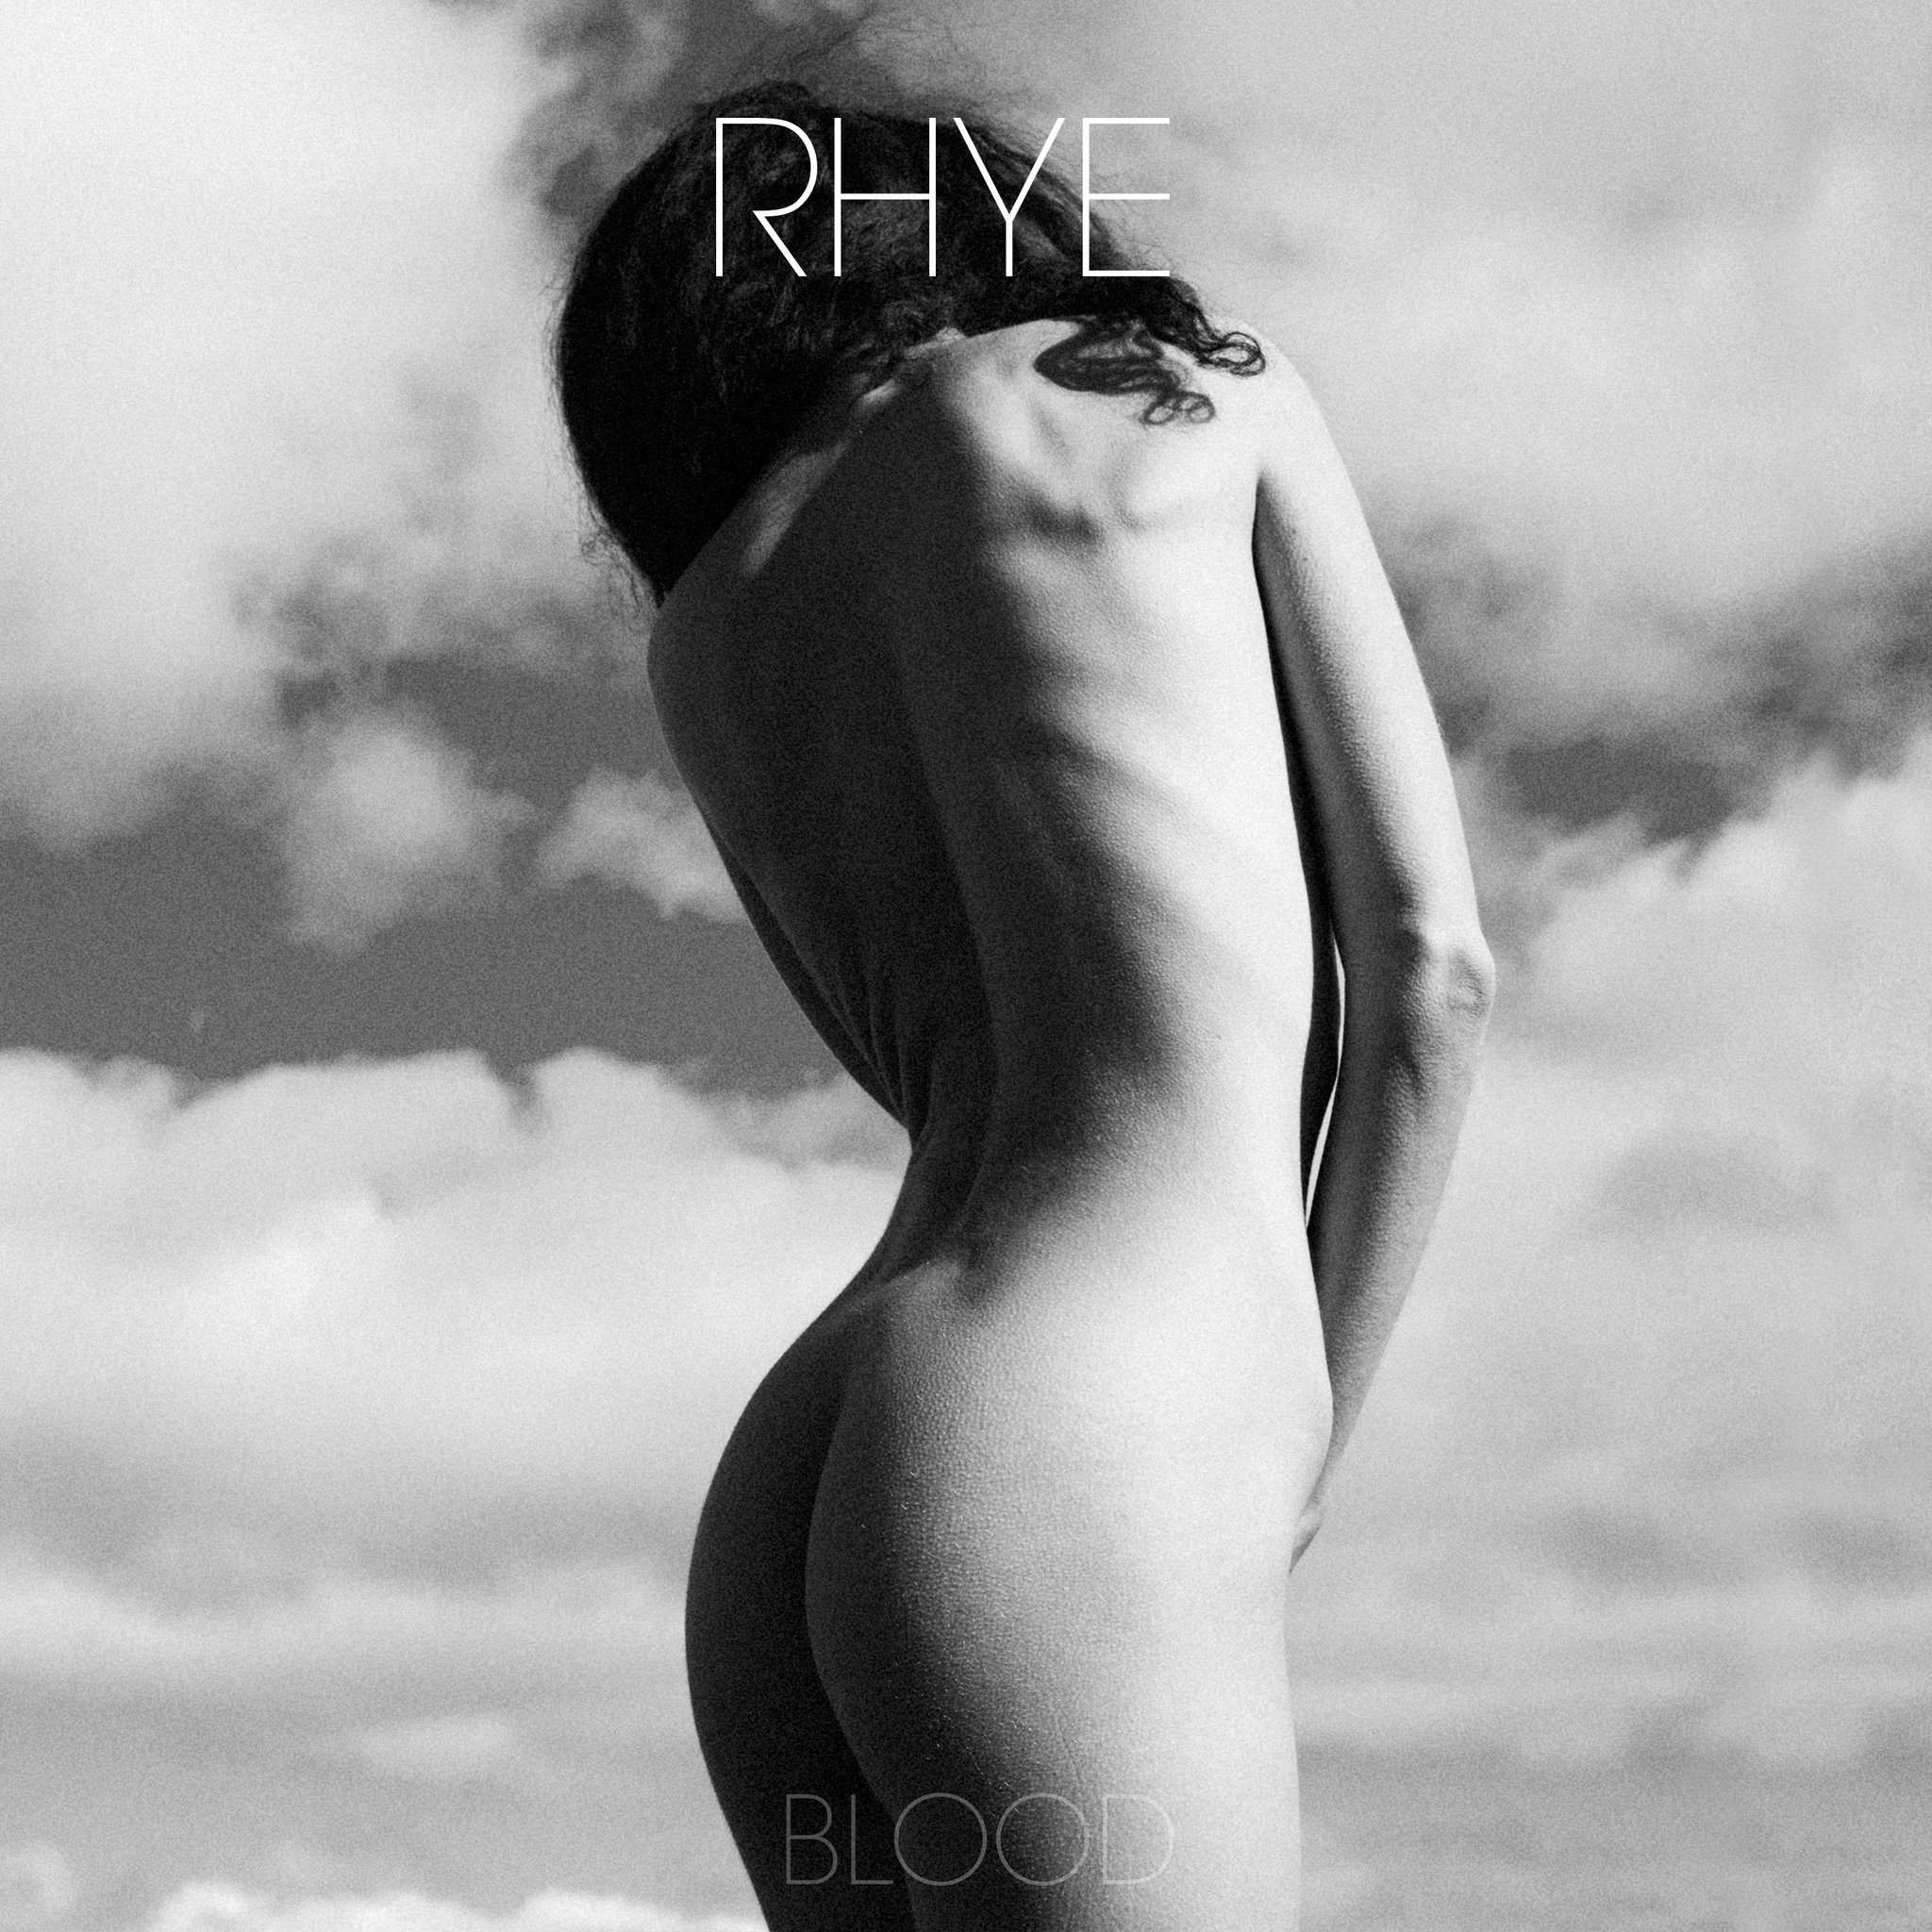 Hear indie-R&B duo @Rhyemusic's sensuous new track |Song For You  https://t.co/GwTwOKsHqf https://t.co/BIUx2RjWV7